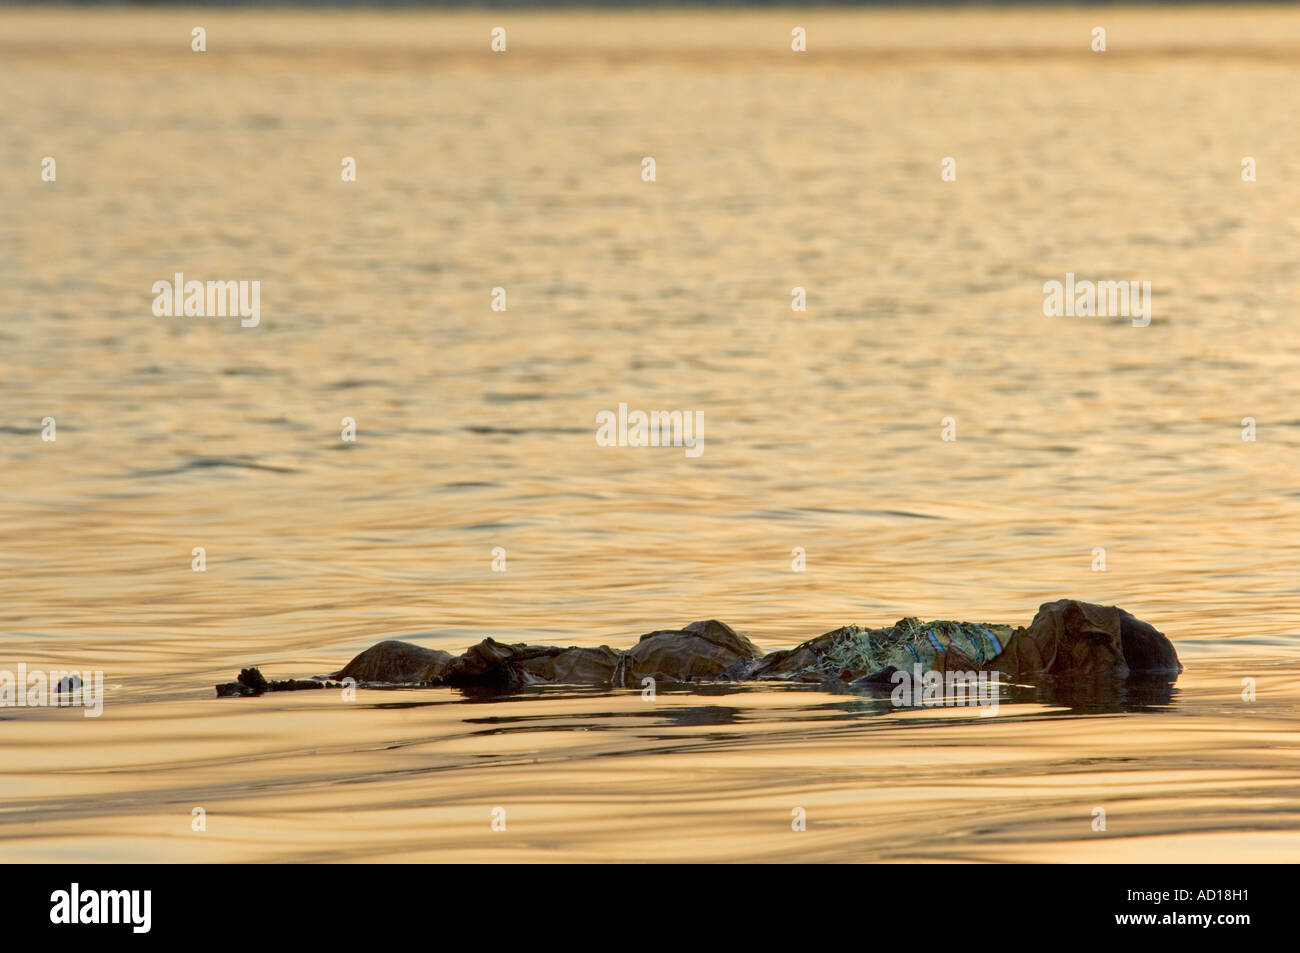 ganges river dead bodies - HD 1300×953